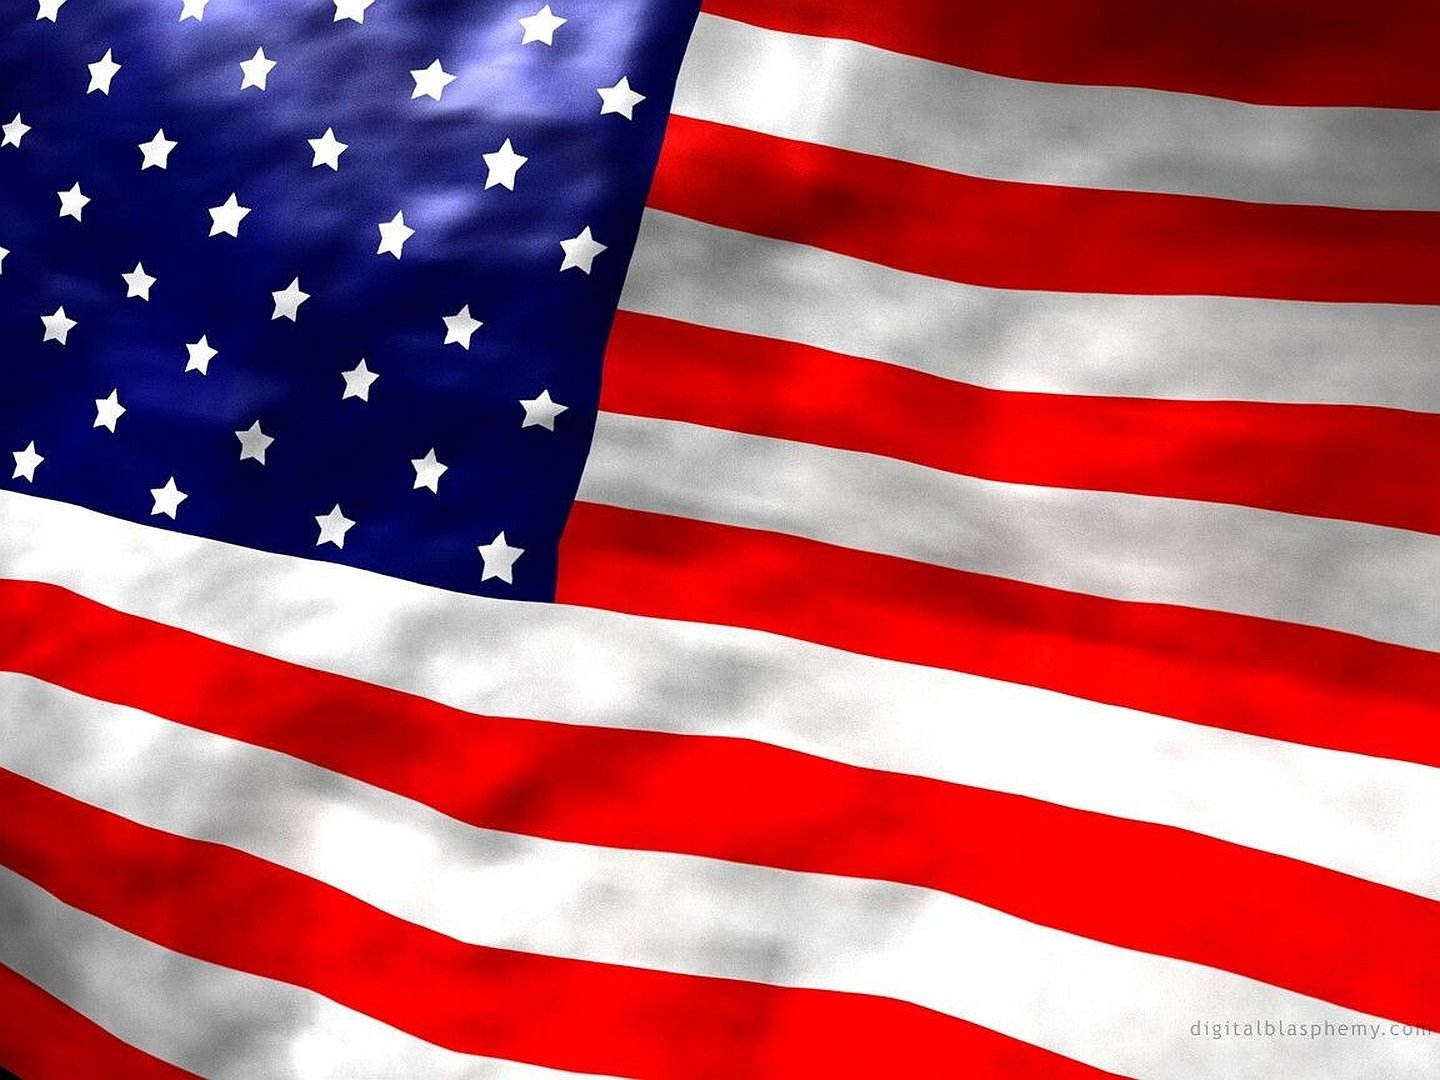 Hd wallpaper background id 331734 1440x1080 man made american flag